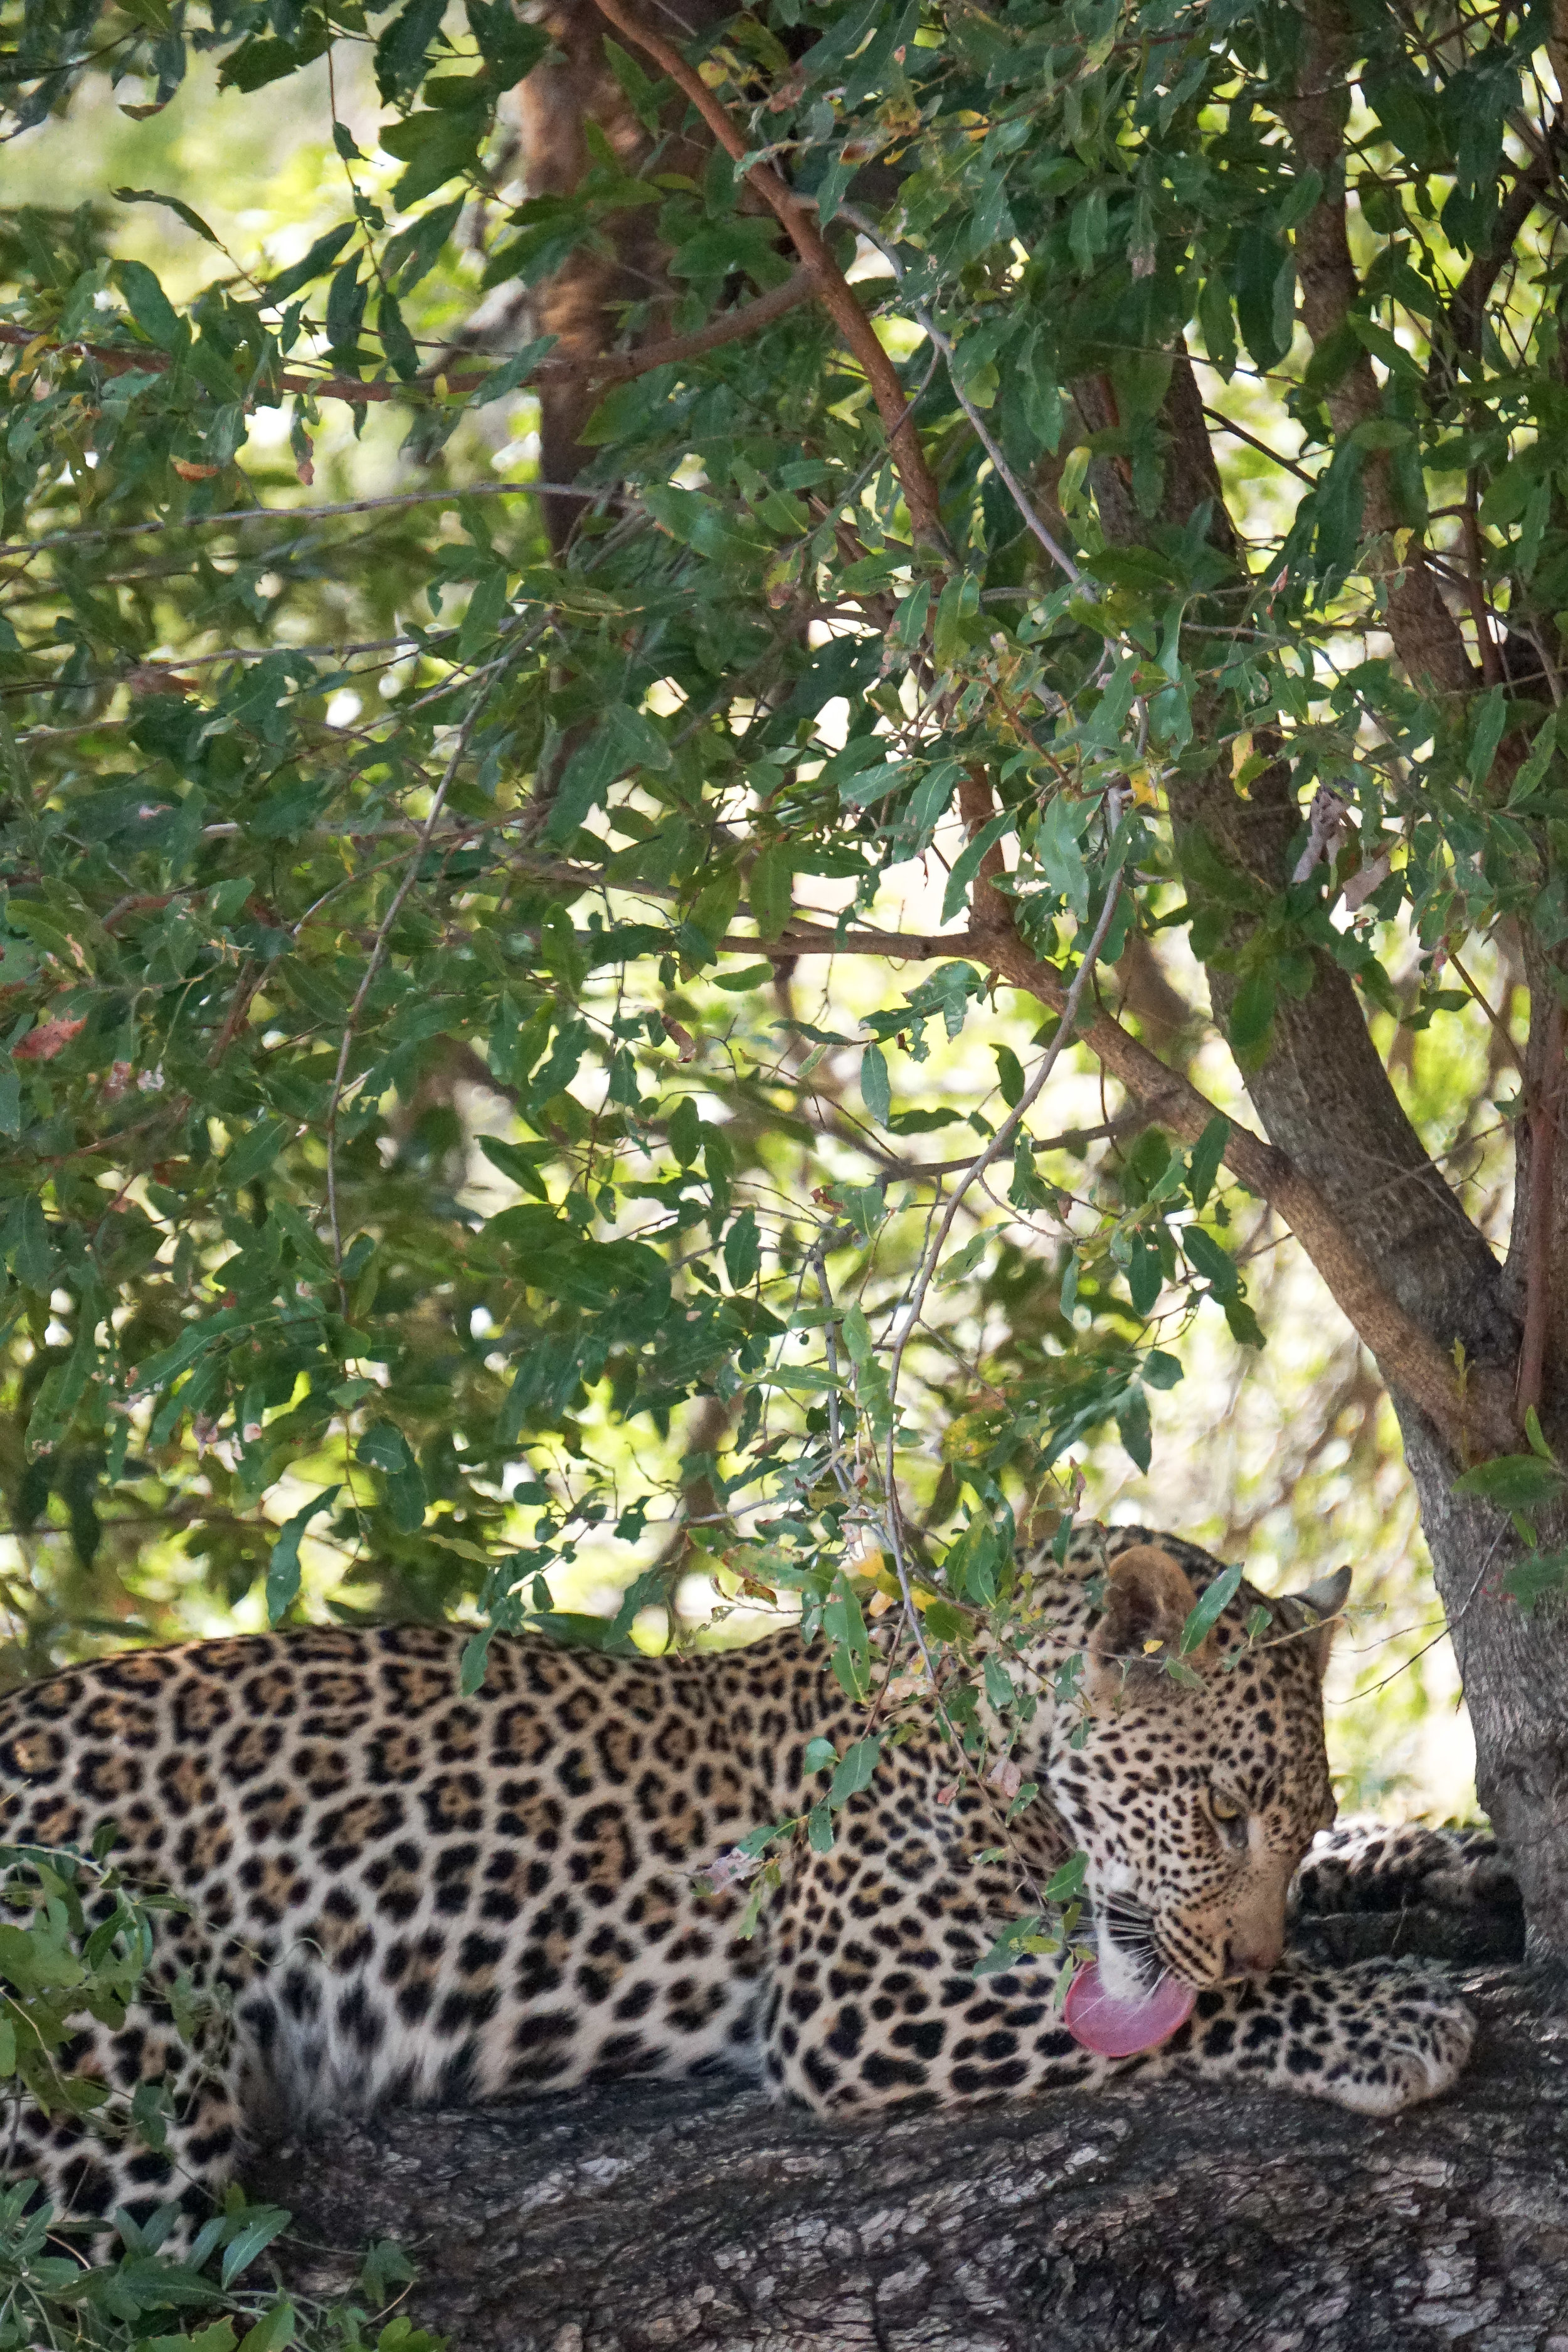 curio.trips.south.africa.safari.young.male.leopard.licking.portrait.jpg